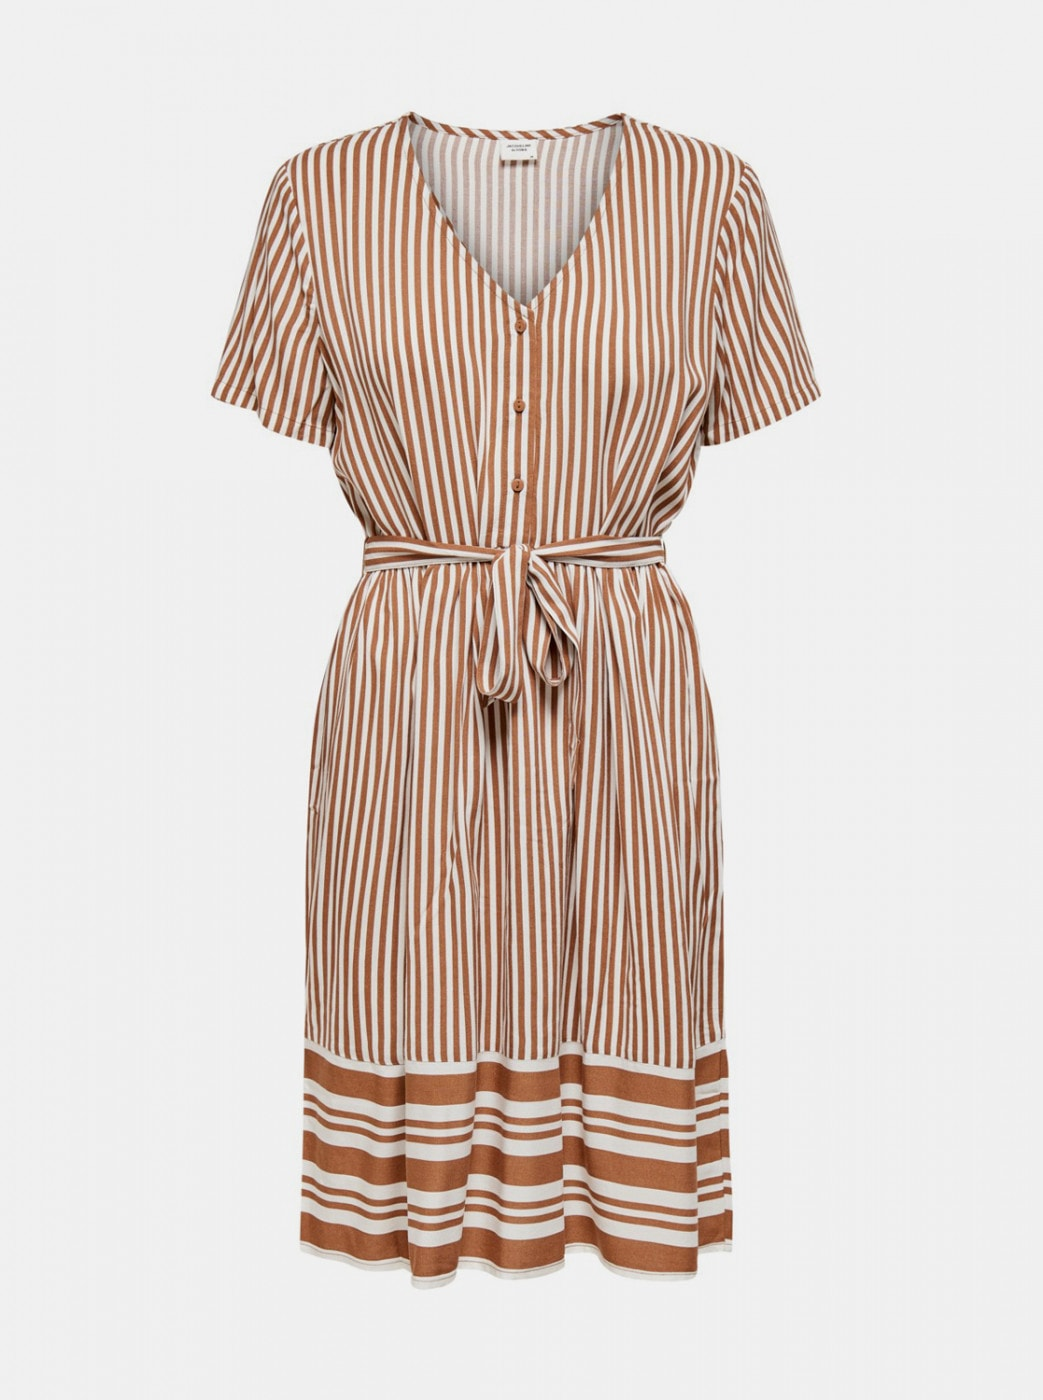 Jacqueline de Yong Tifanny's Brown Striped Dress